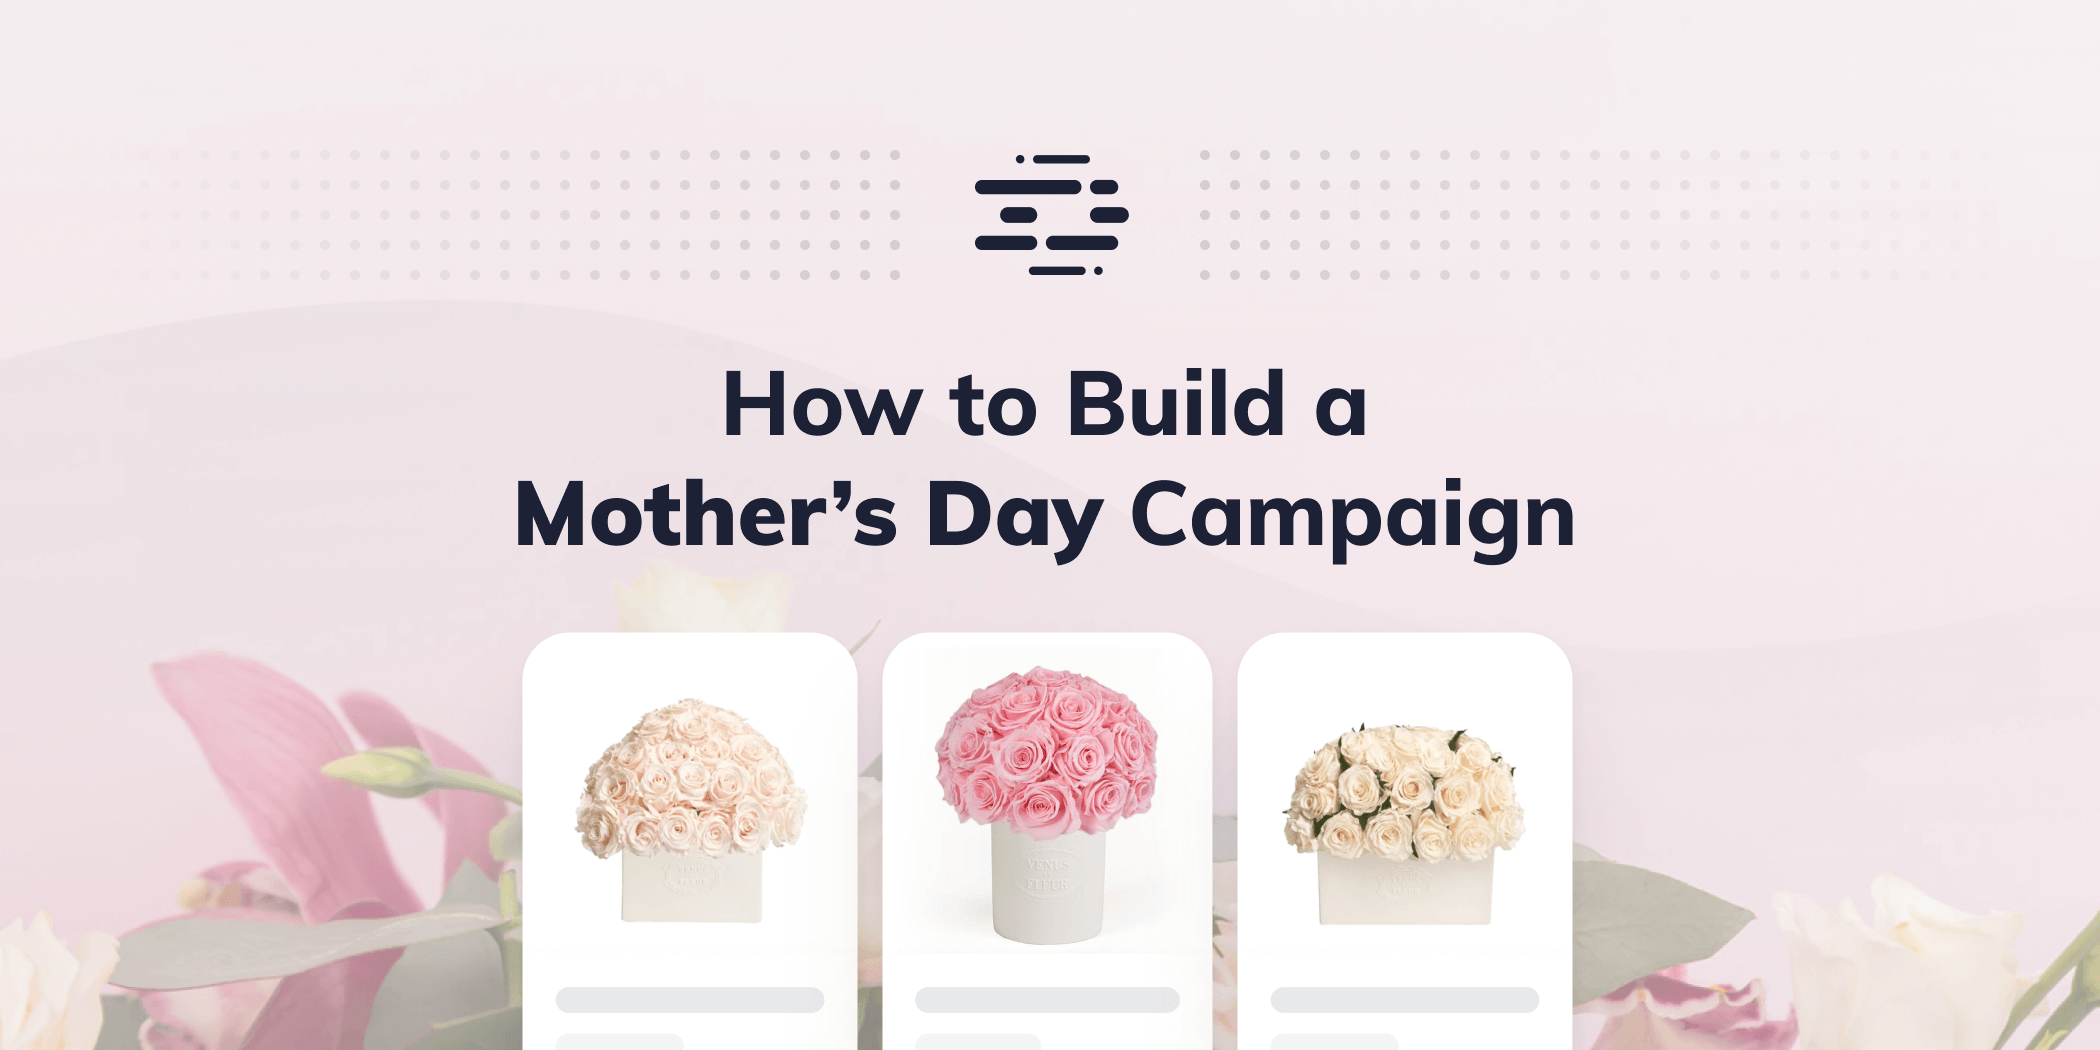 How to Build a Mother's Day Campaign that Works